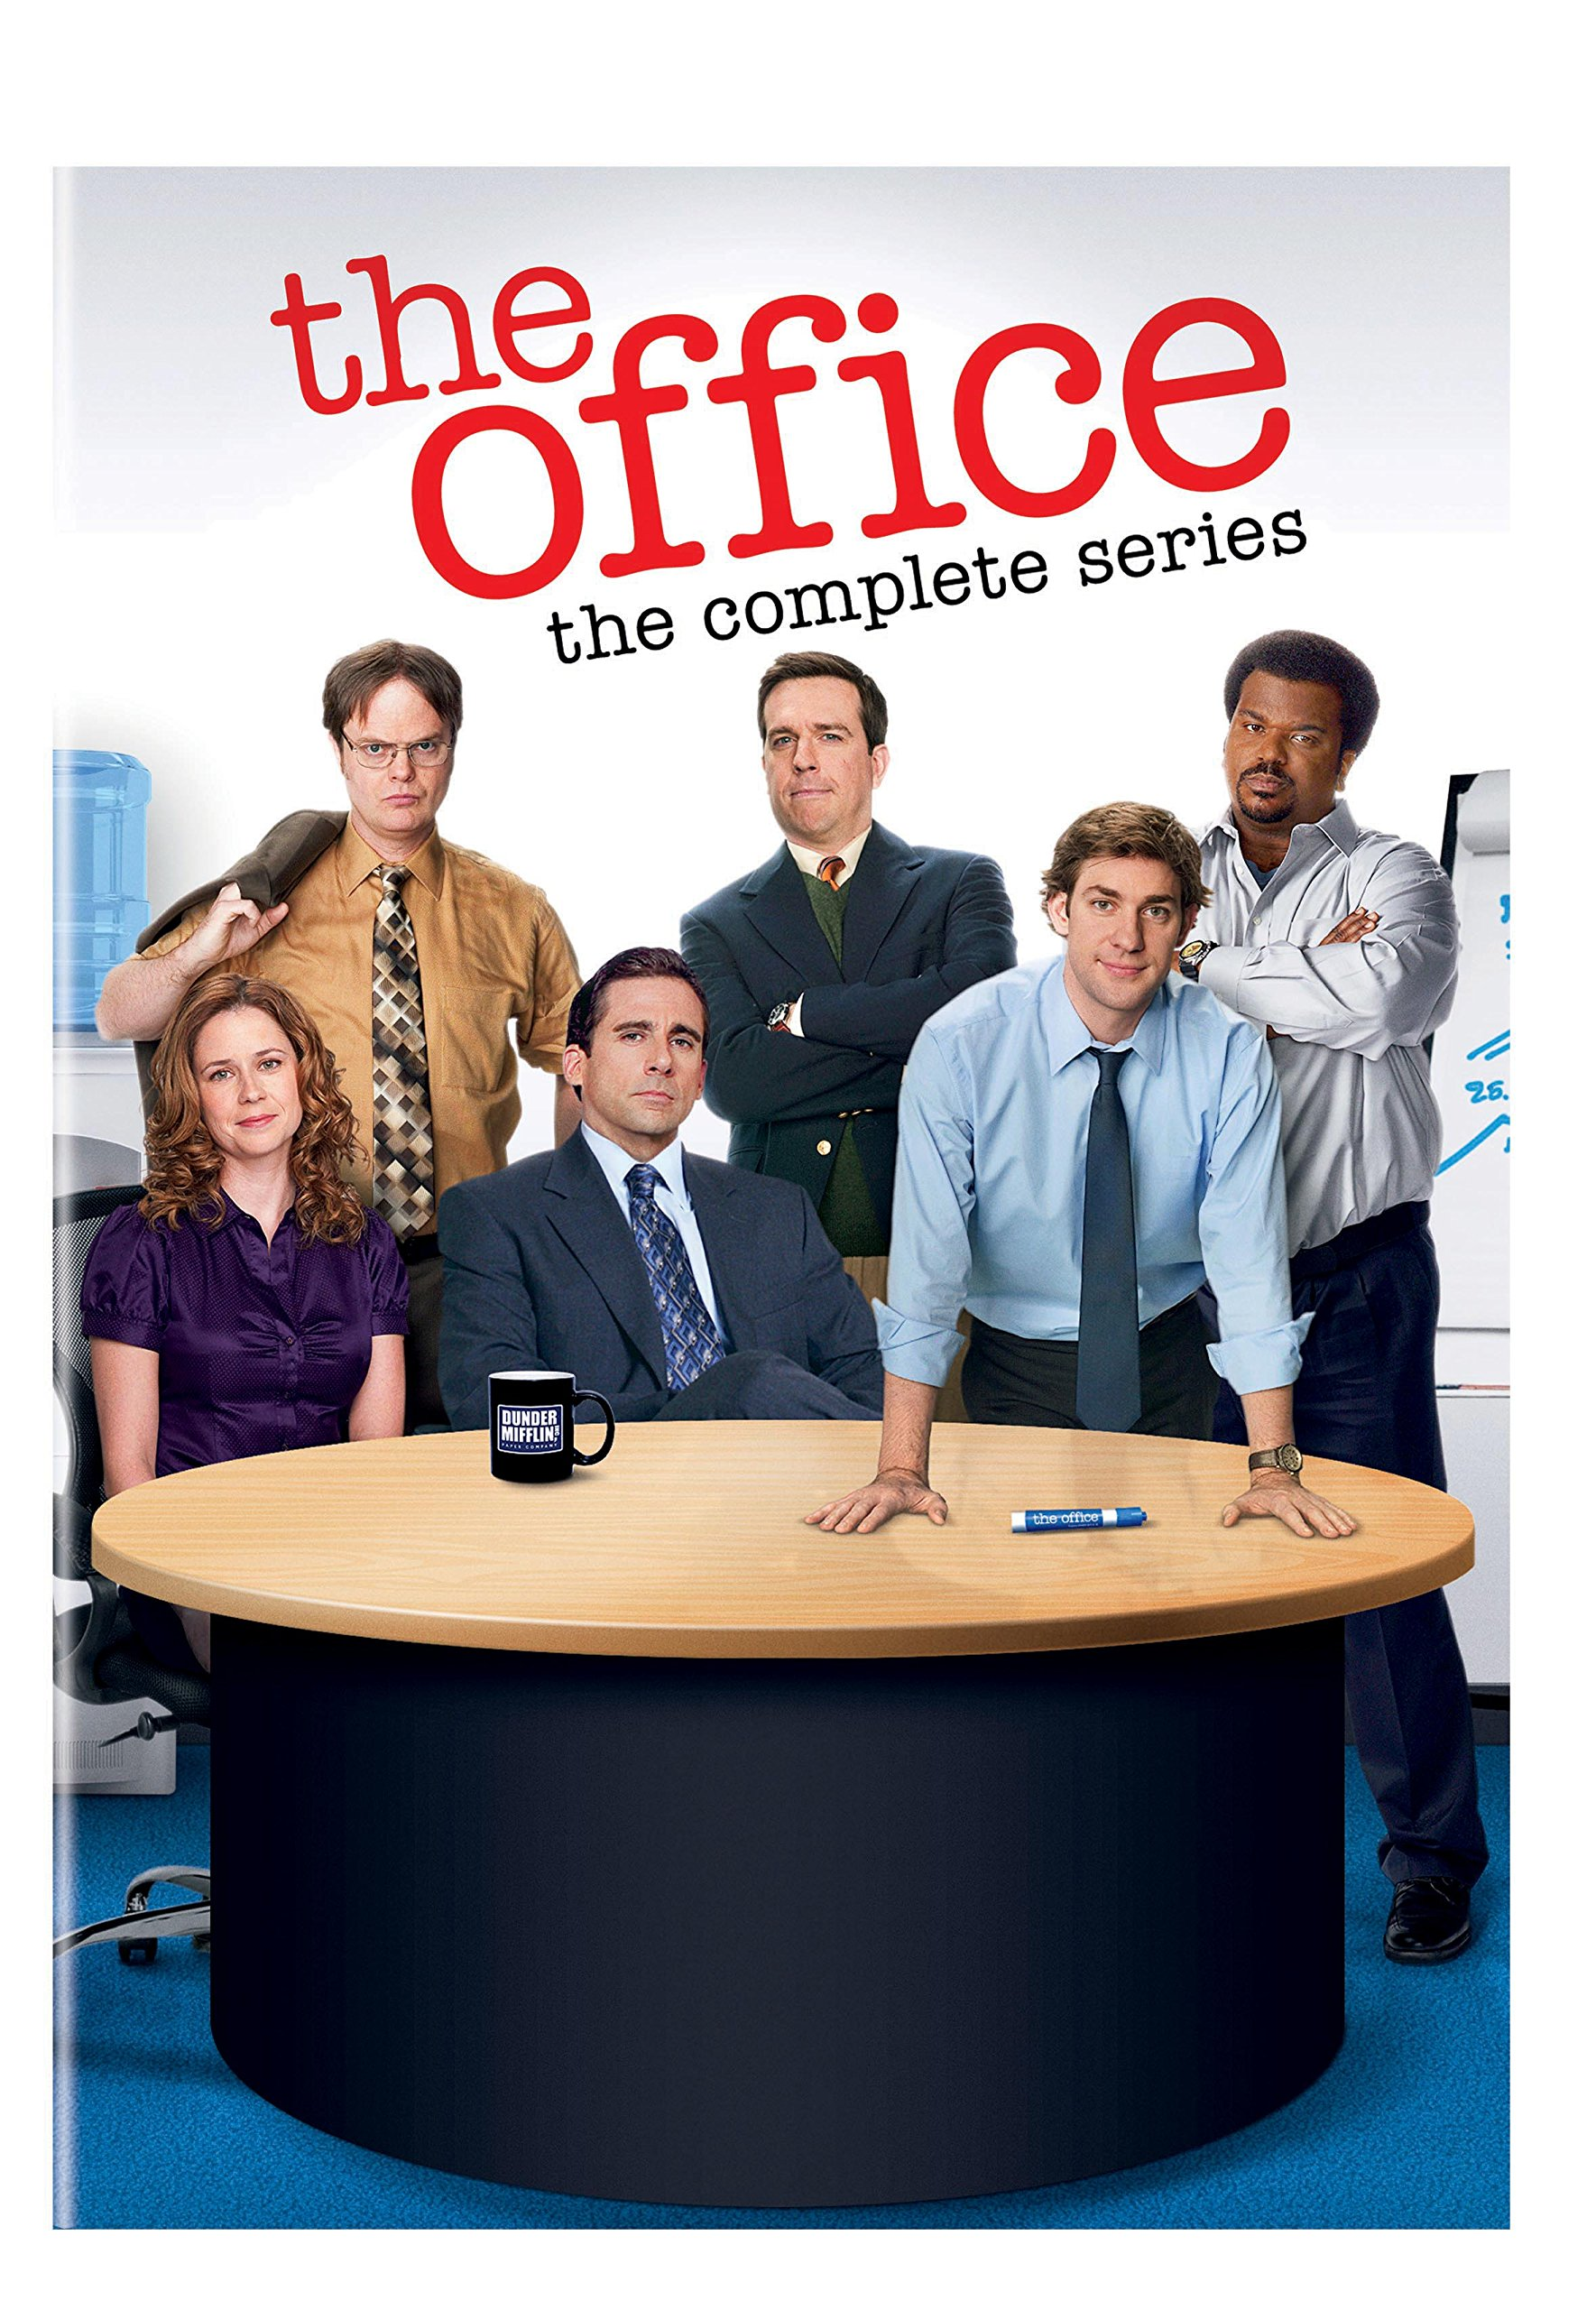 The Office: The Complete Series by Universal Studios Home Video